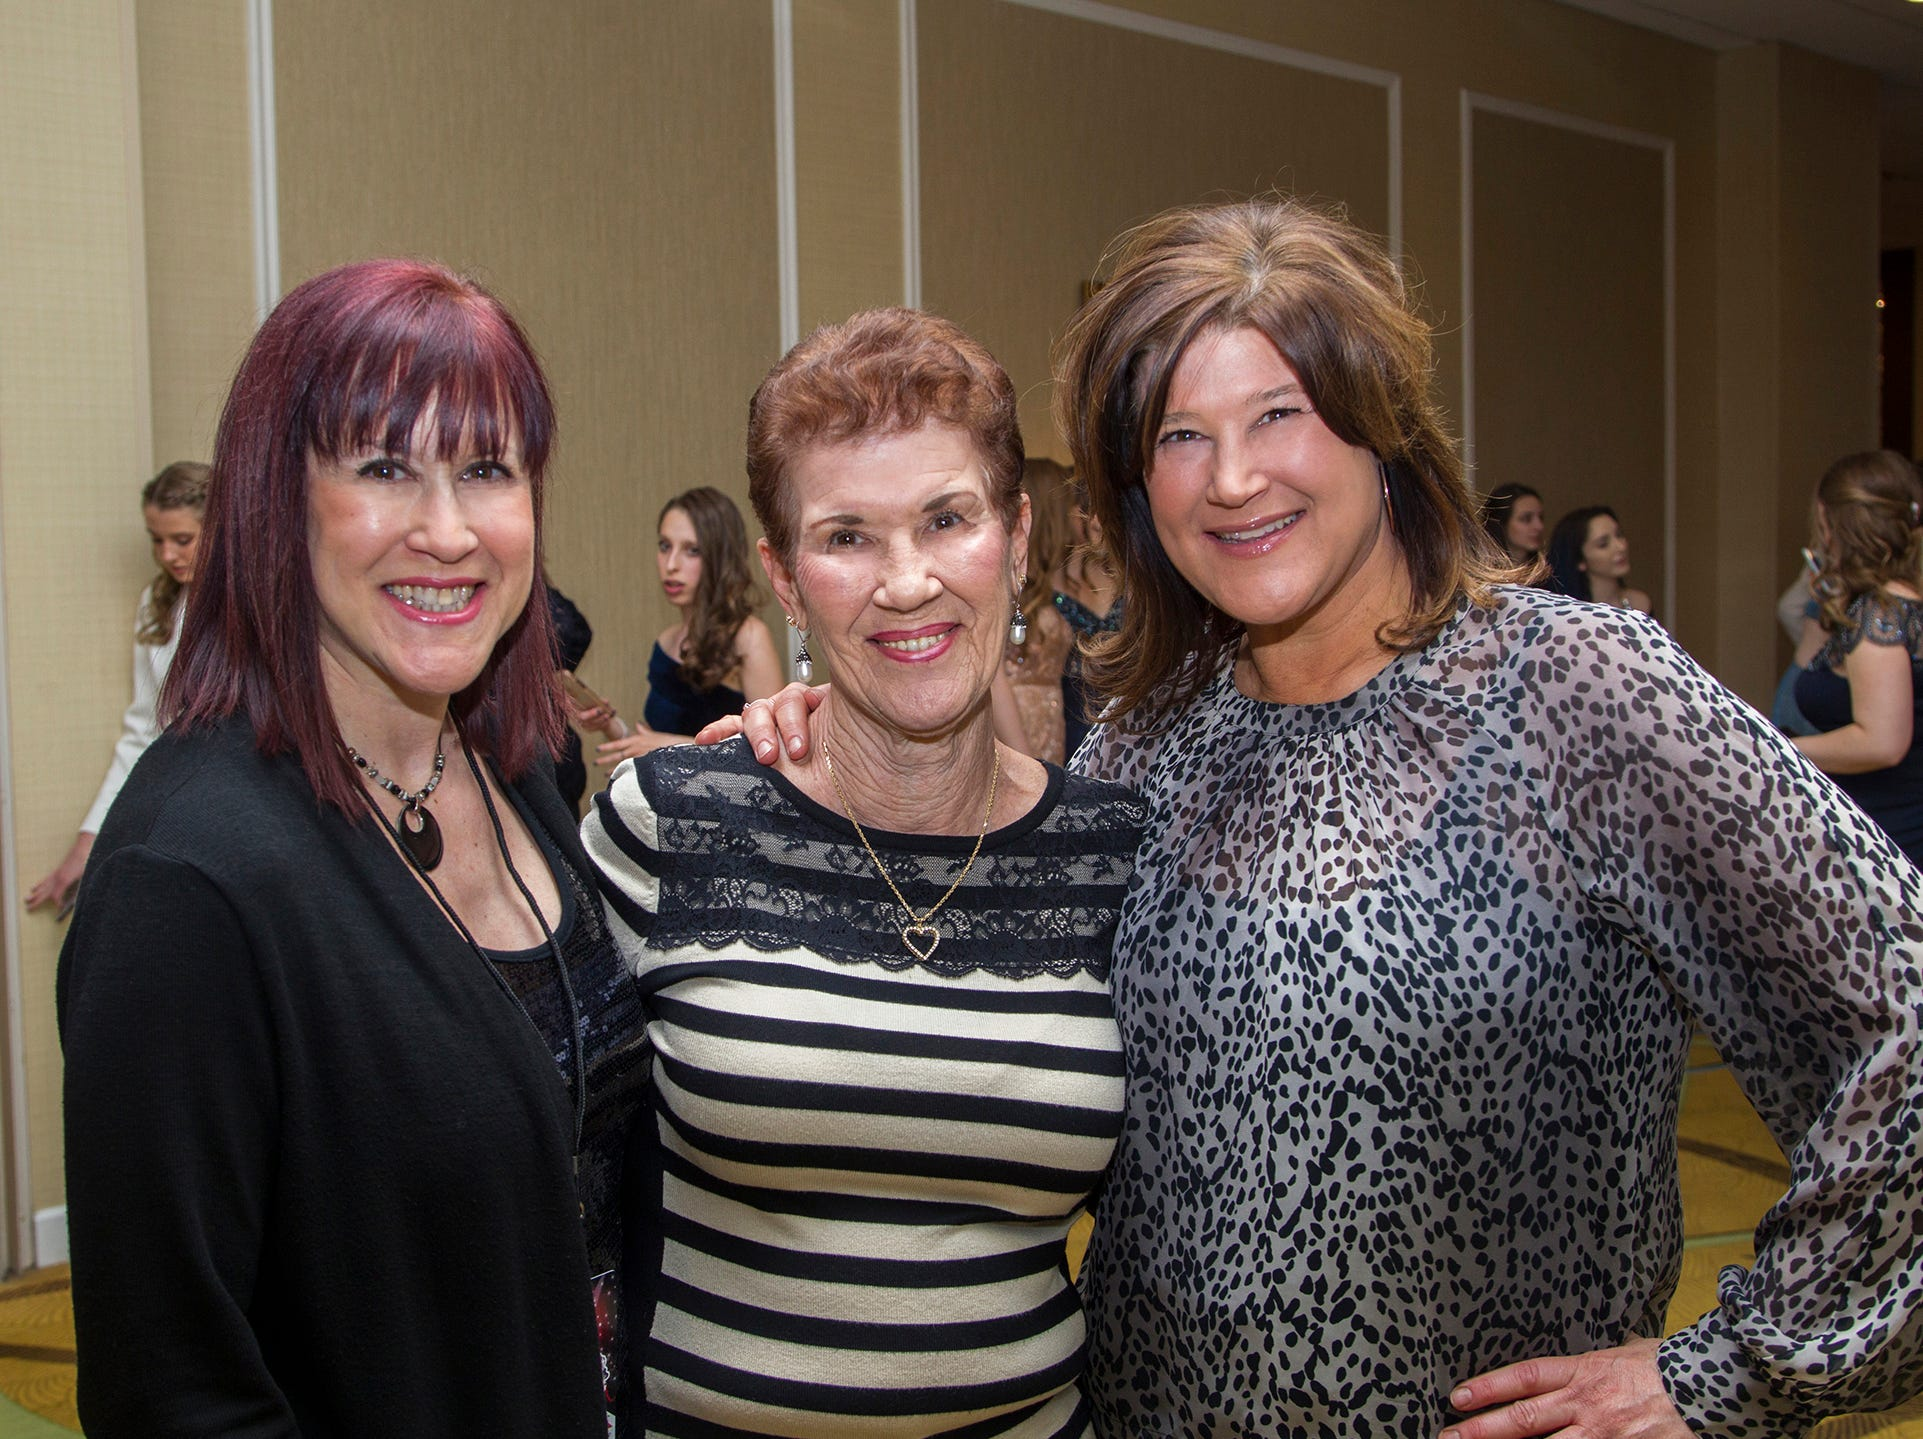 Angela, Carol, Donna. Ridgewood High School seniors held their Project Graduation fashion show at the Teaneck Marriott at Glenpointe. Students walked the runway in this season's latest fashion trends. All funds raised benefited the school's Project Graduation Fund for the class of 2019. 03/03/2019